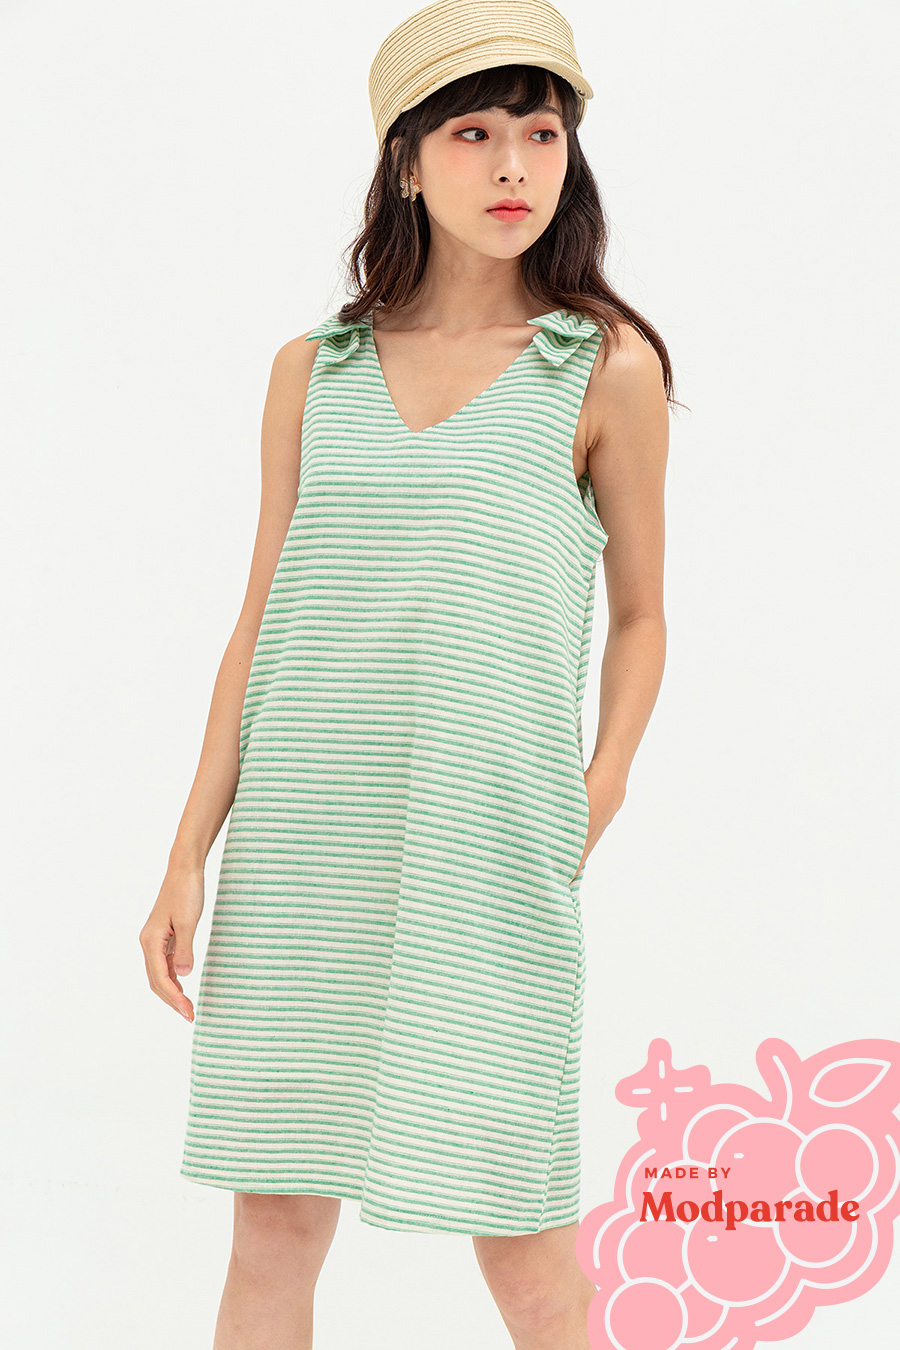 BAMBINA DRESS - NEPTUNE STRIPE [BY MODPARADE]